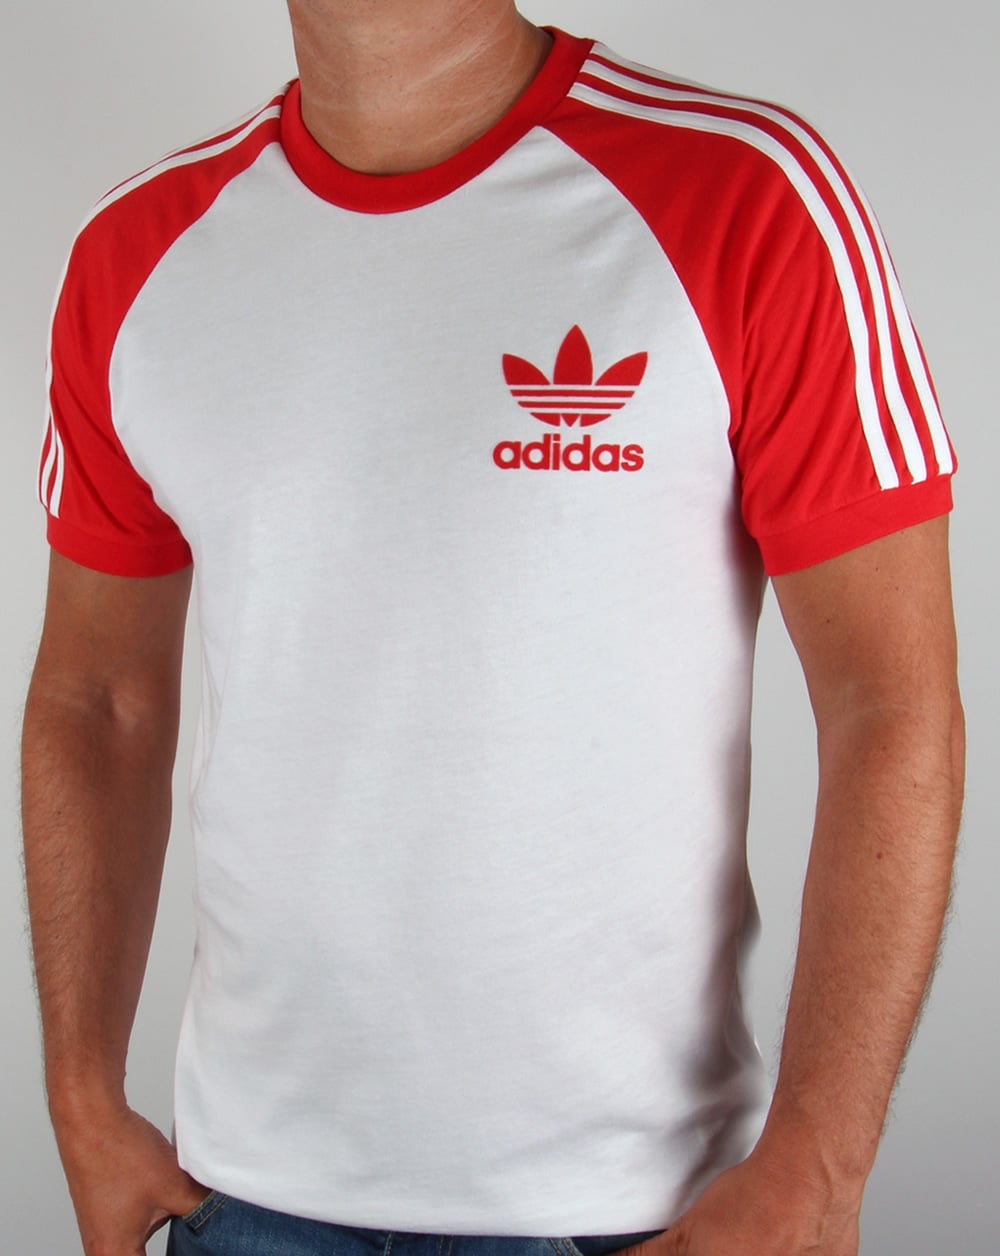 adidas originals retro t shirt